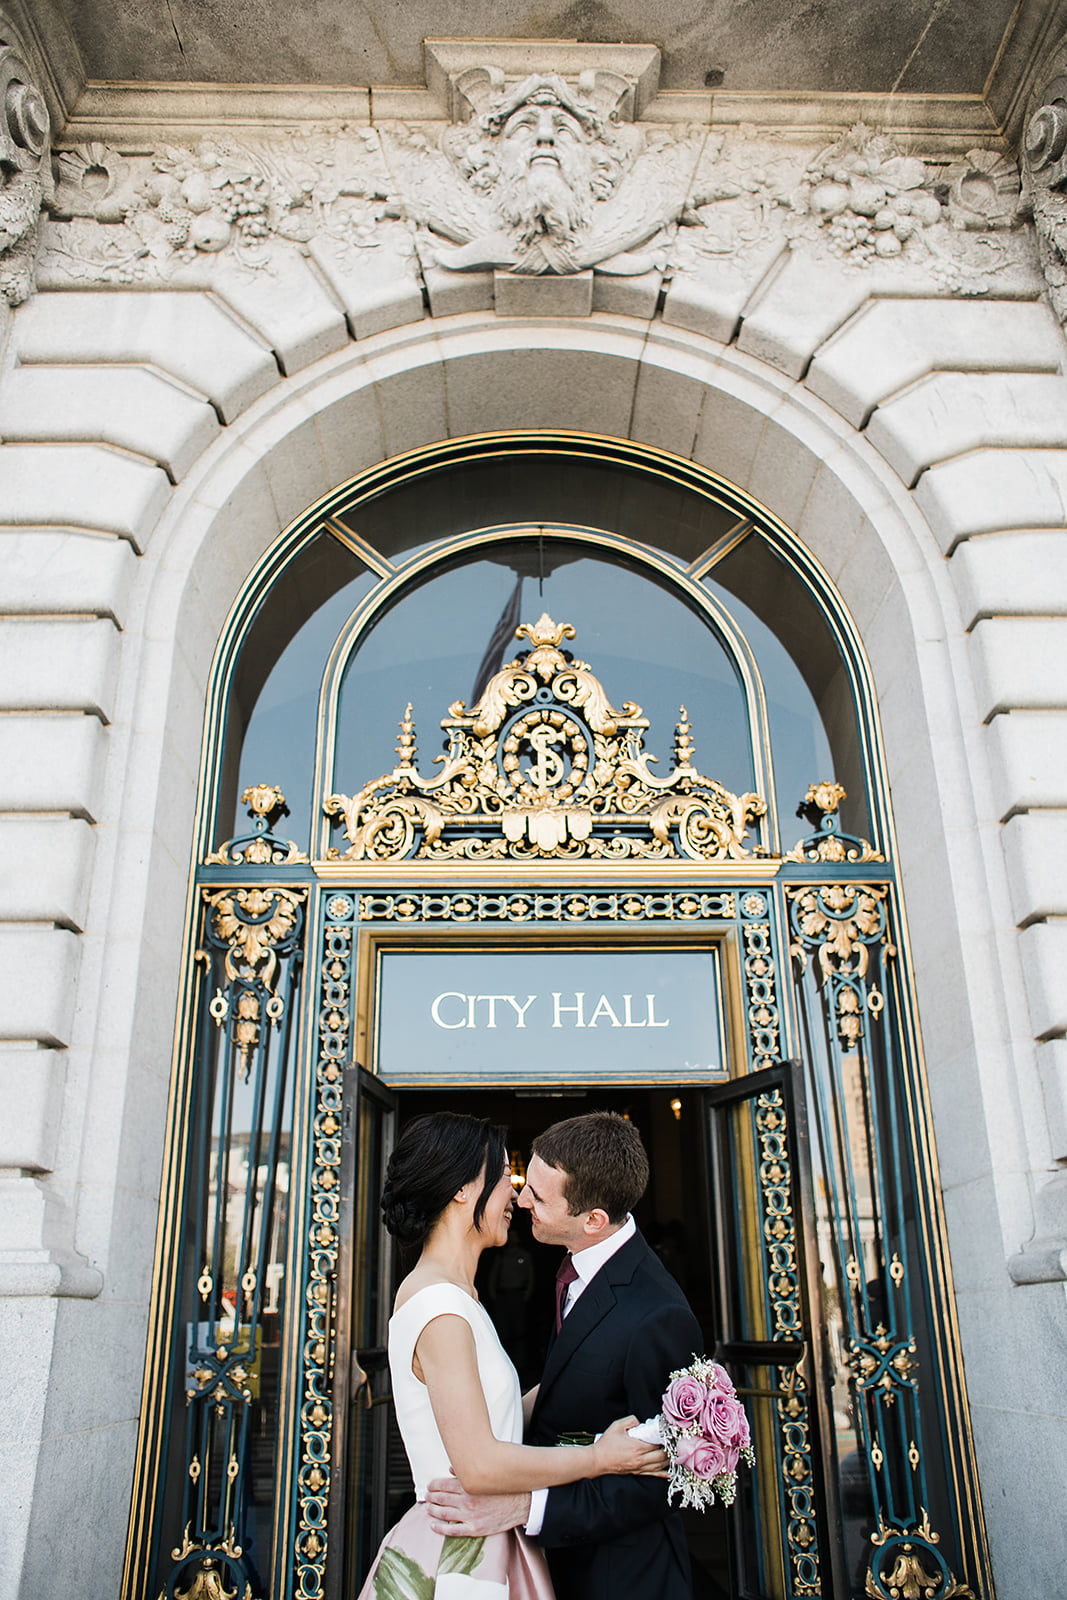 Jeff + Yujia | City Hall, San Francisco